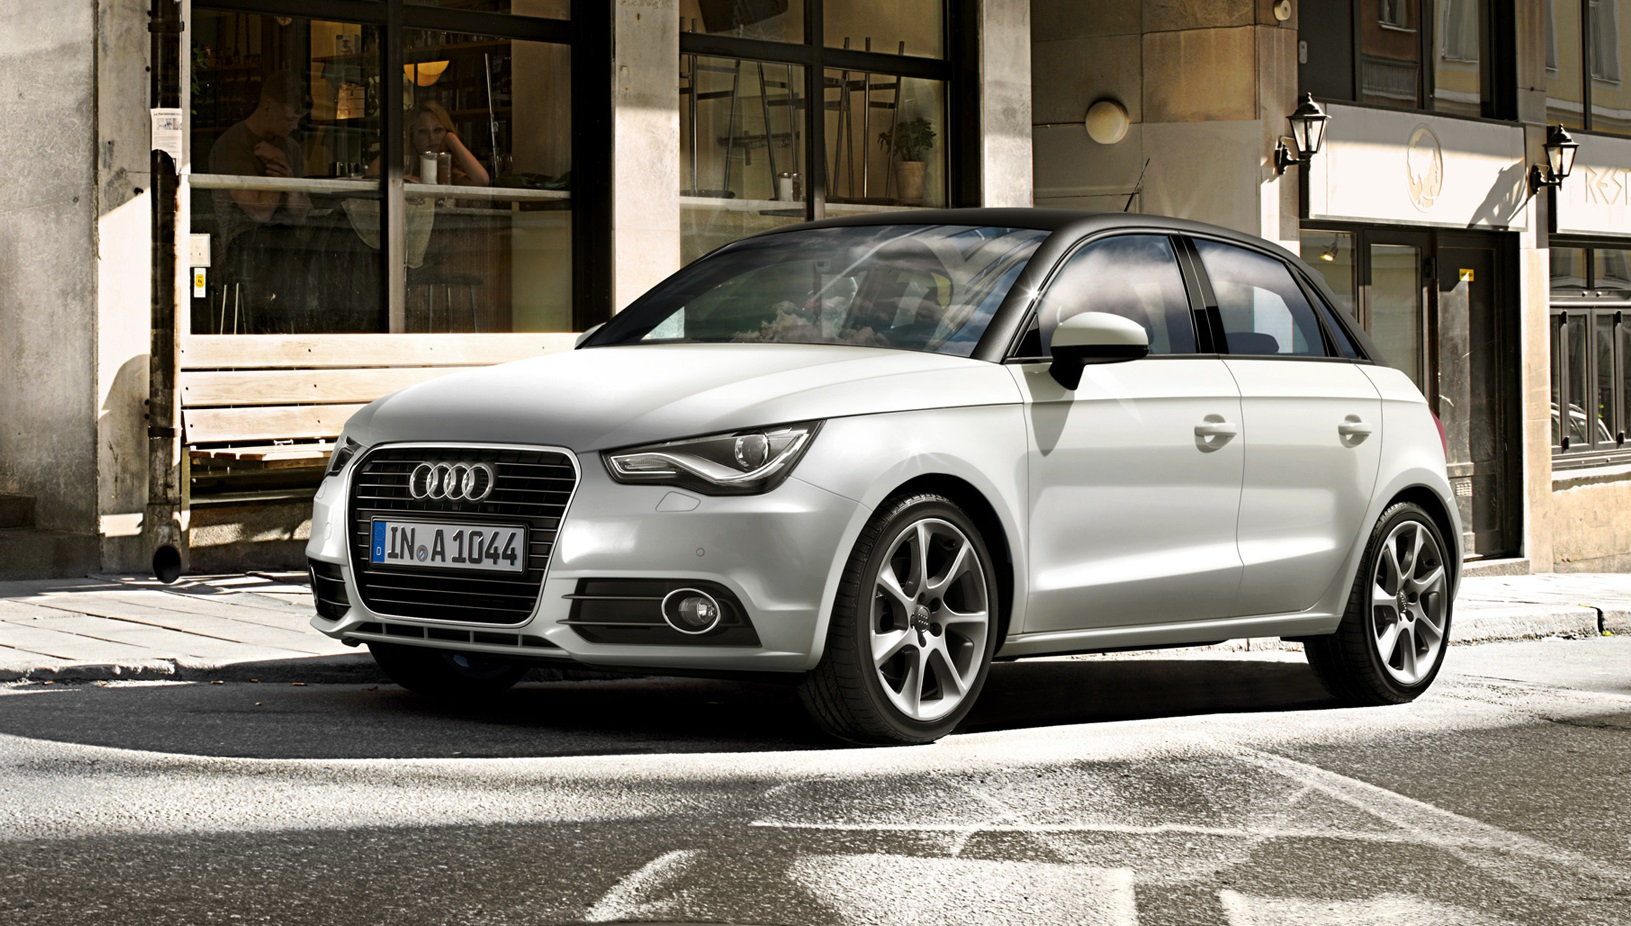 audi a1 2015 essence 1 4 tfsi 125 cv reprogrammation de votre vehicule. Black Bedroom Furniture Sets. Home Design Ideas